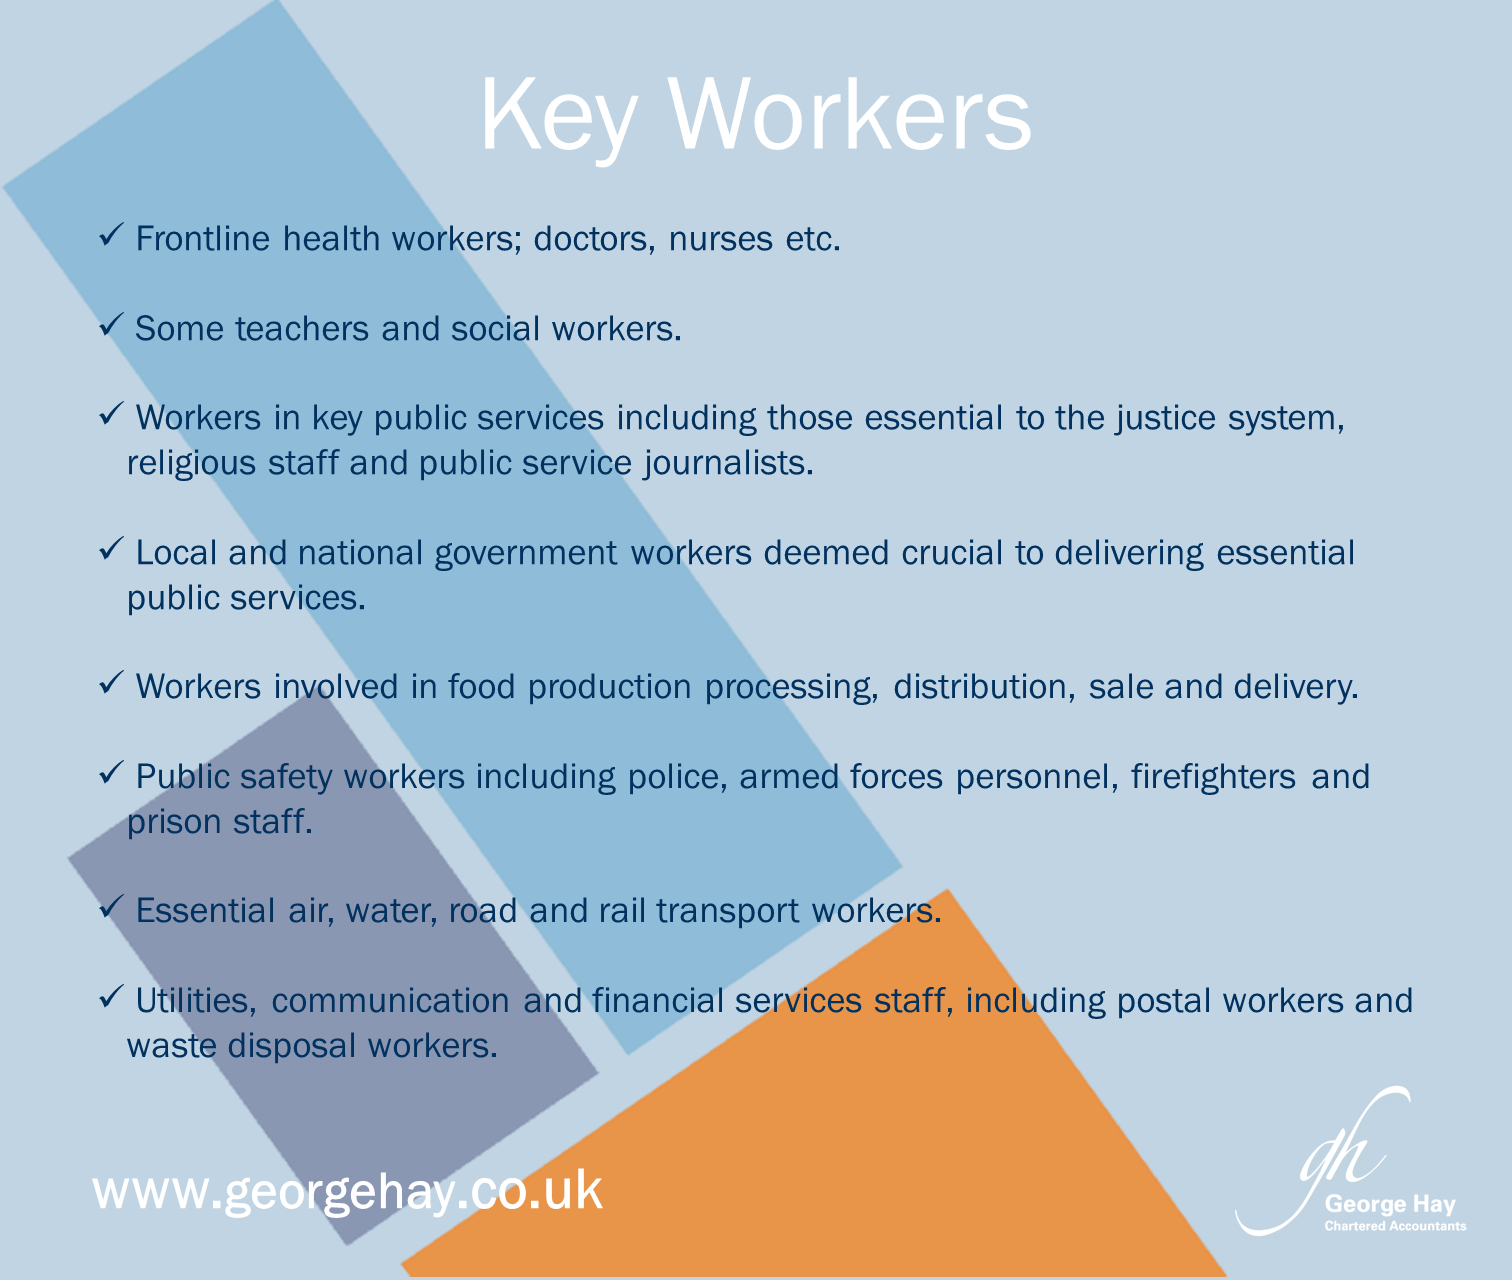 Who Are Key Workers During The Coronavirus Outbreak